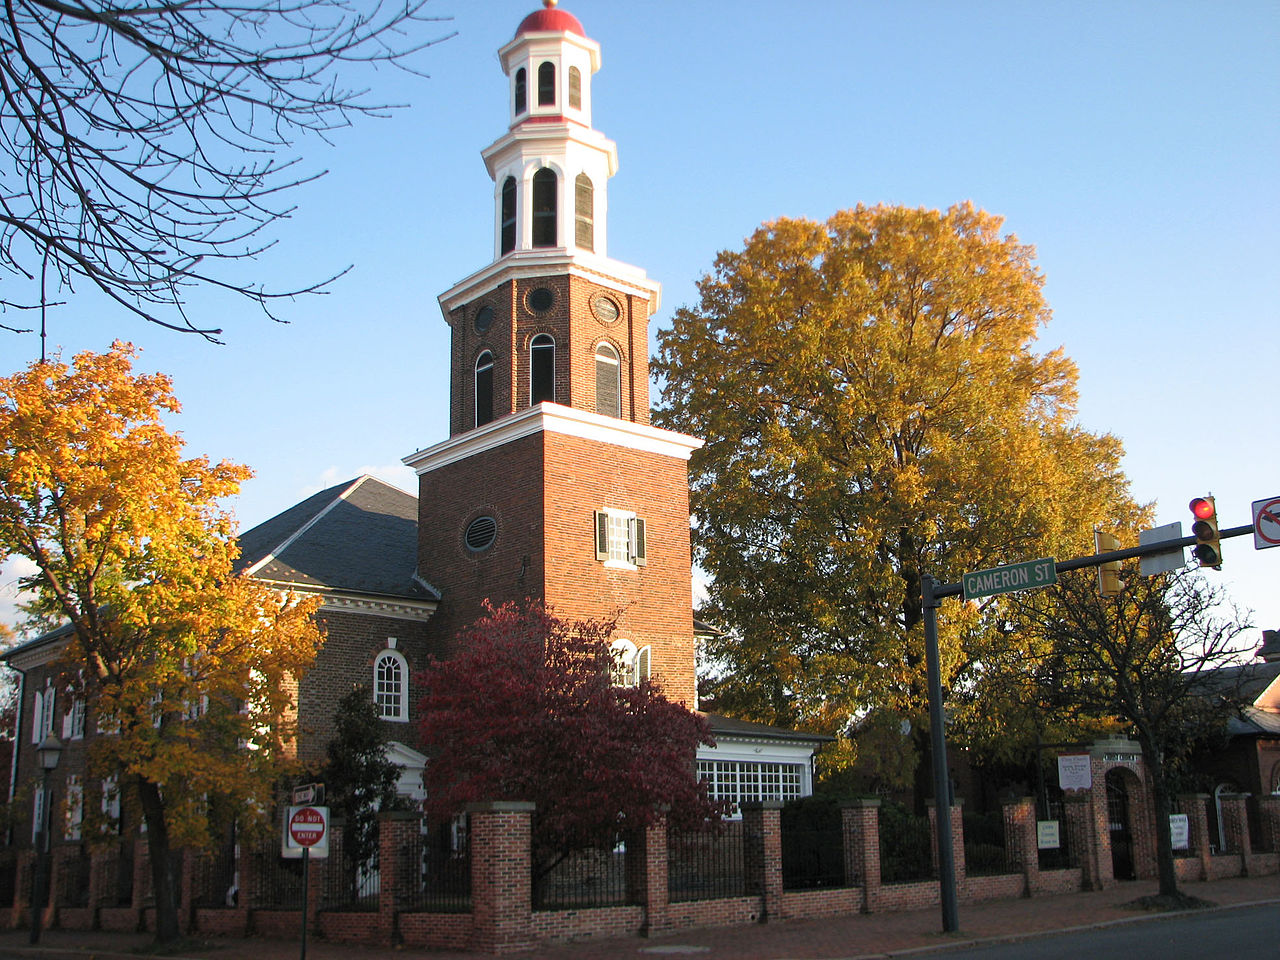 Christ Church in Alexandria, Virginia. Image courtesy Wikimedia Commons.